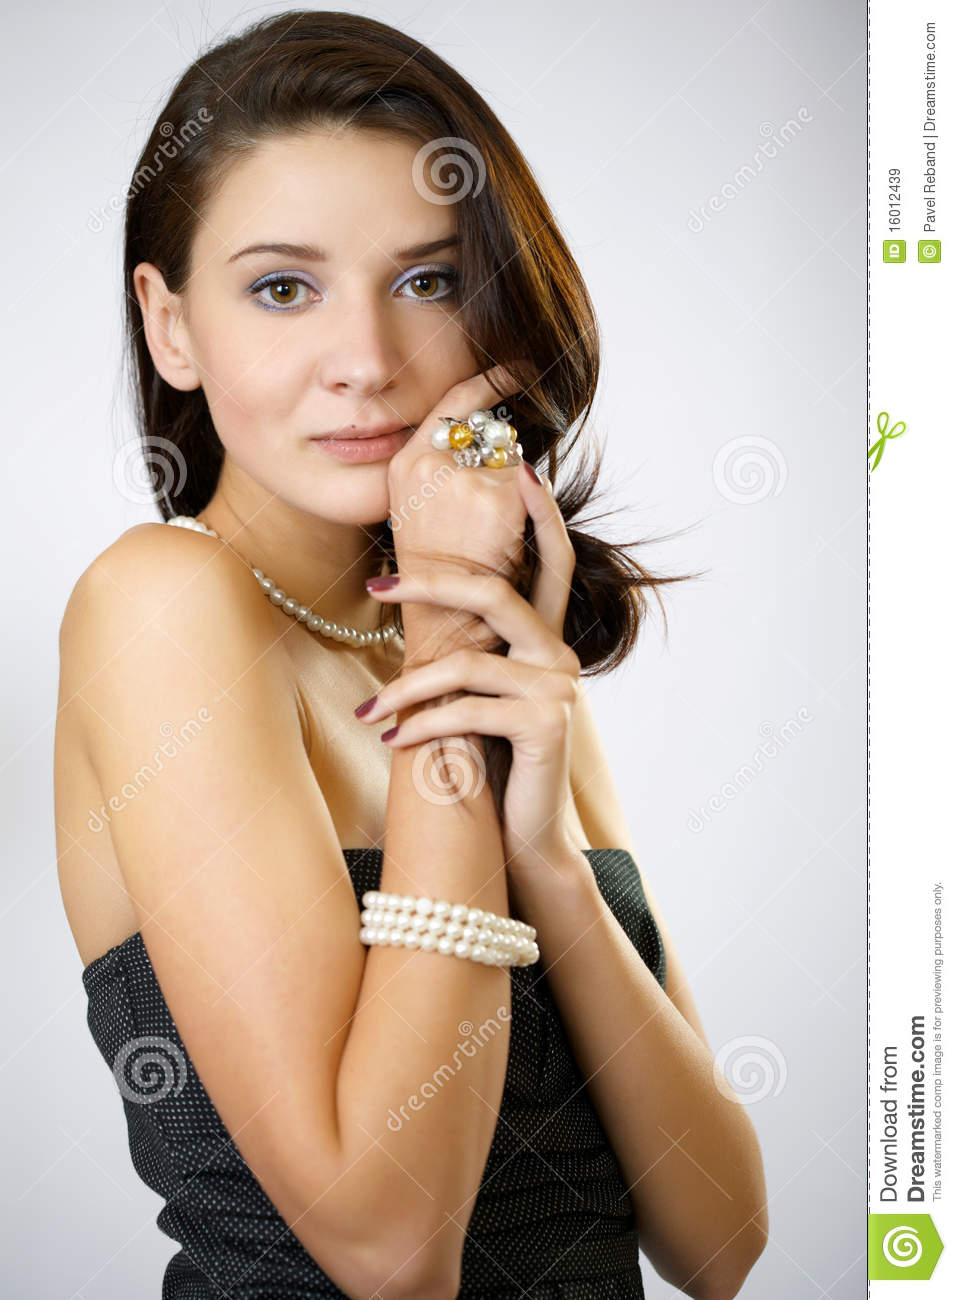 Fashion portrait of a woman in a casual dress